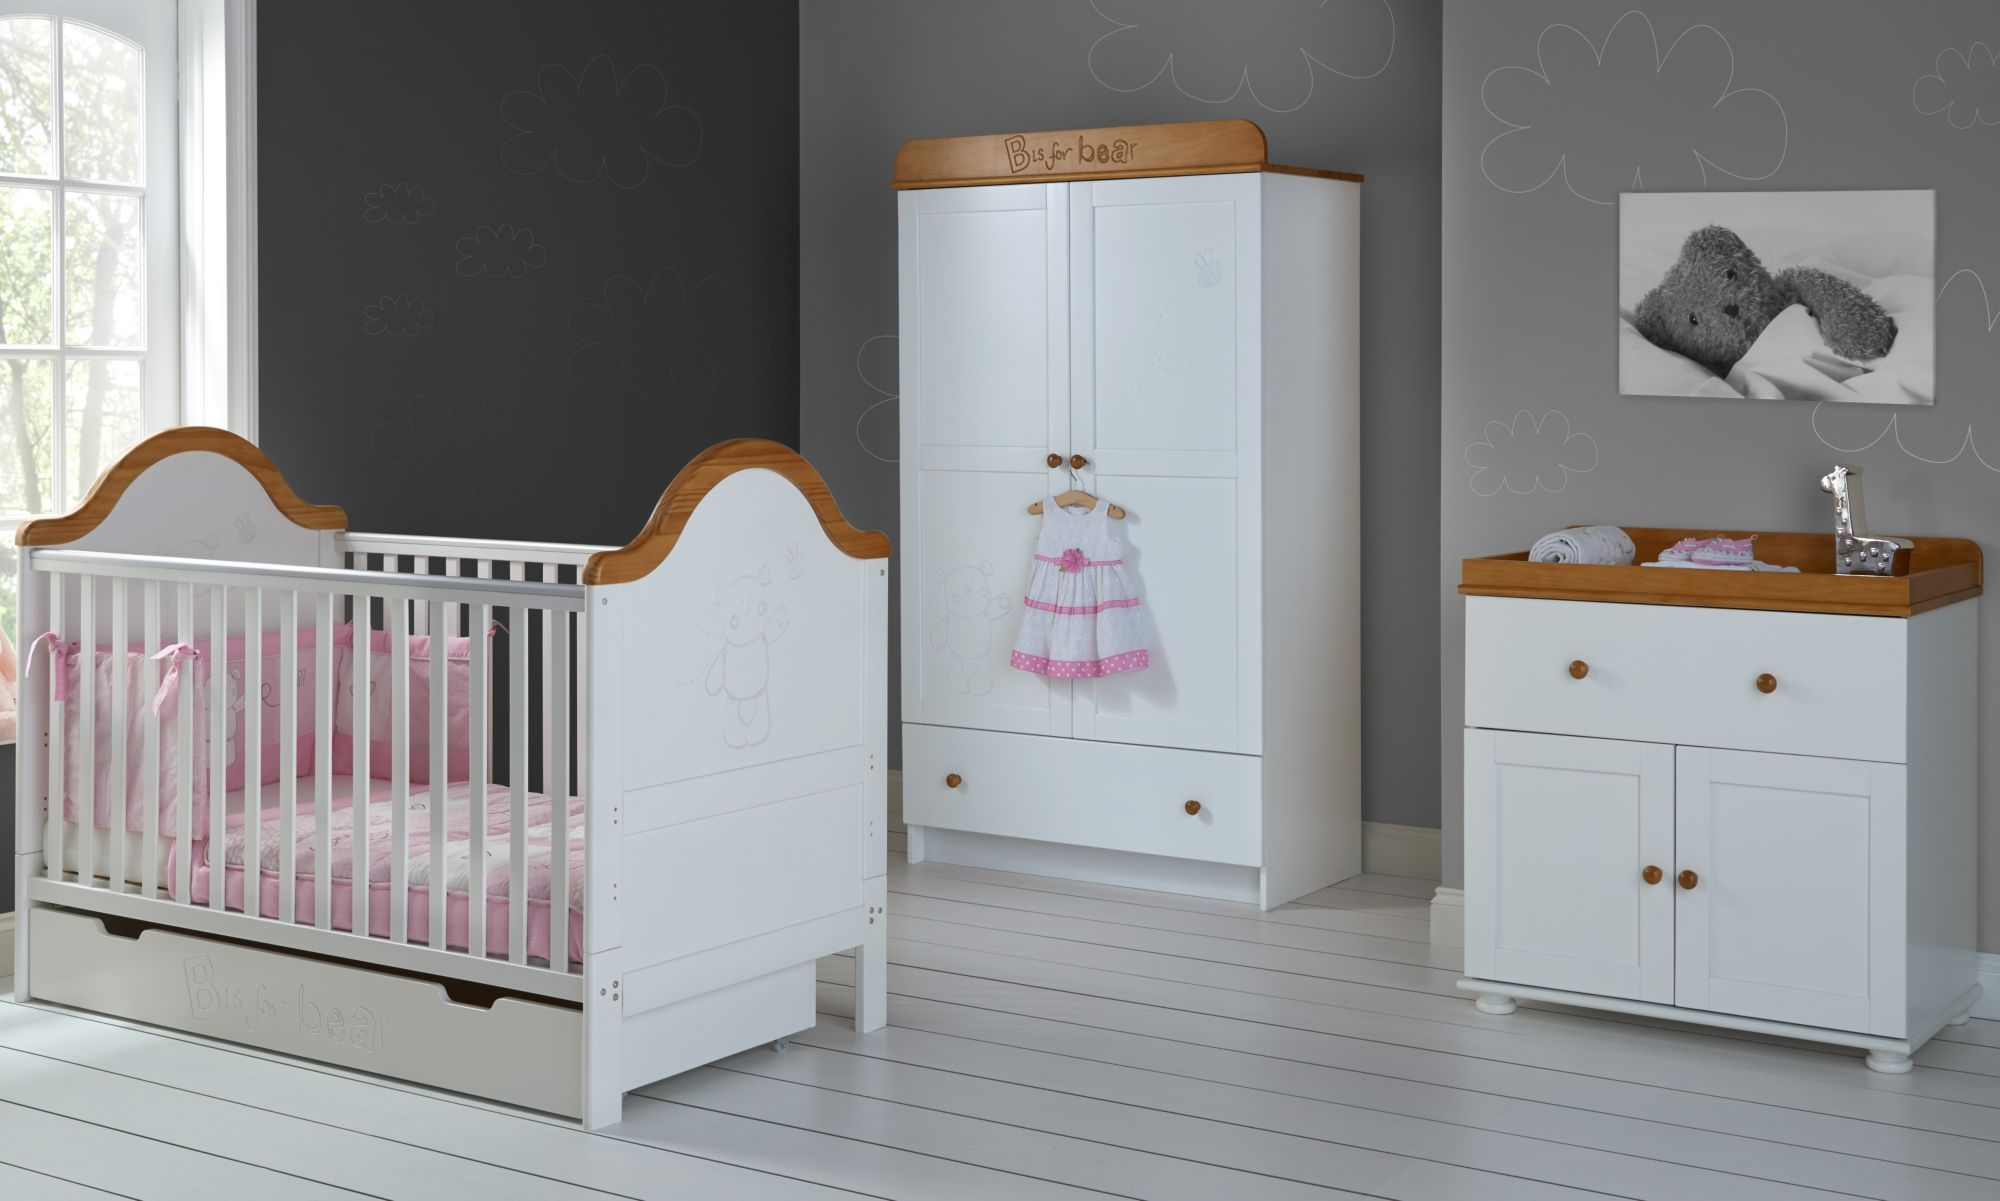 Obaby B Is For Bear Premium 4 Piece Nursery Furniture Room Set White And Pine